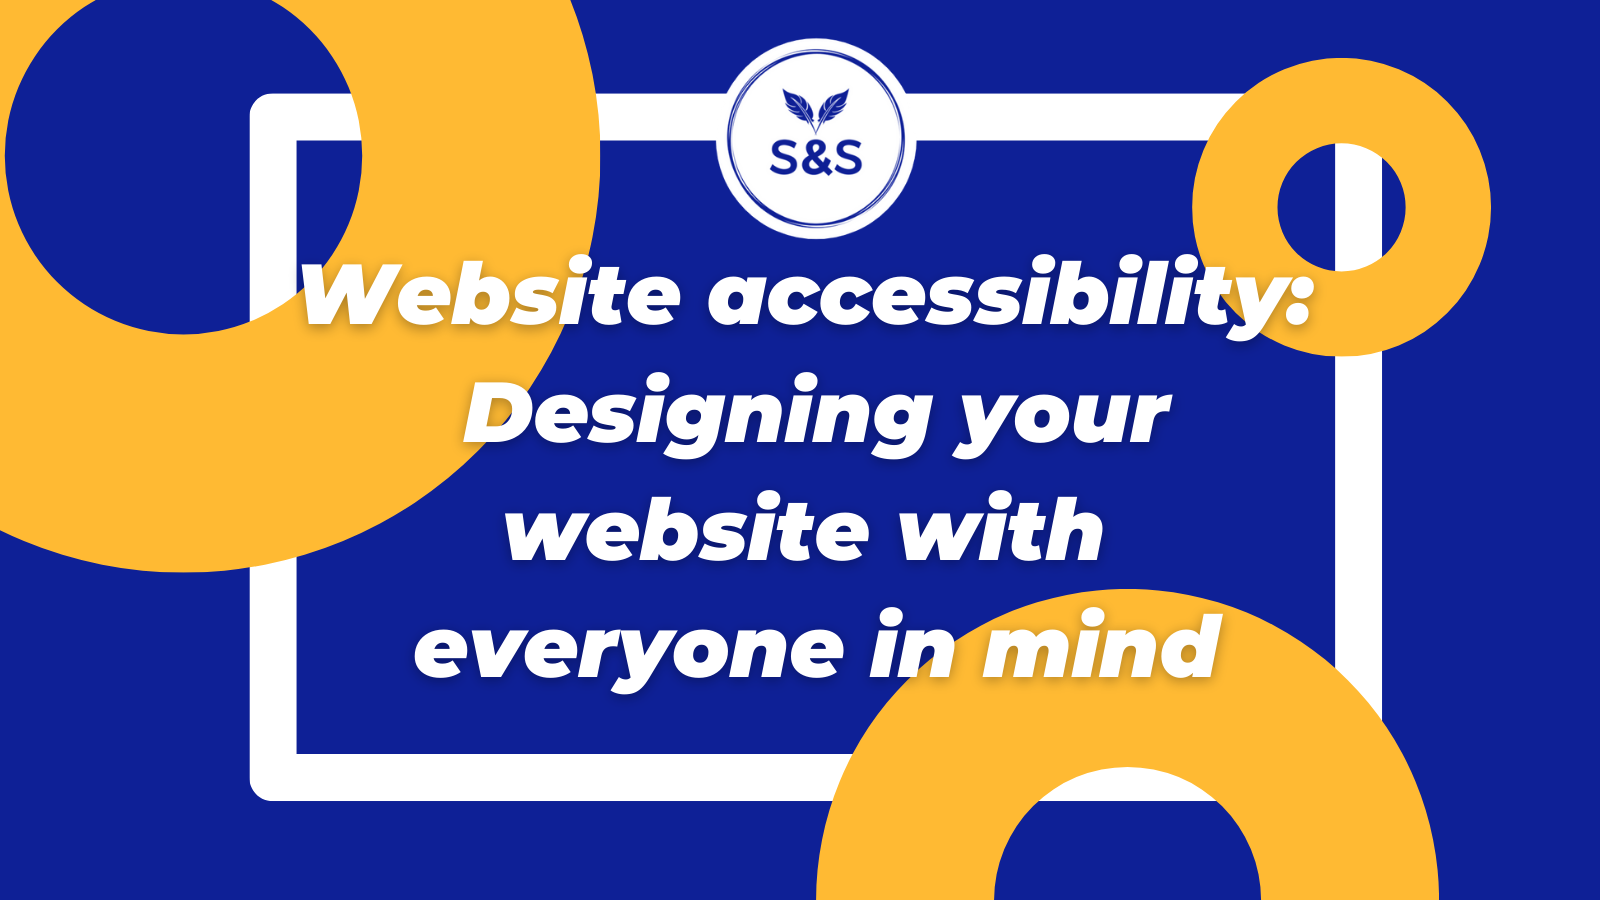 Website accessibility Designing your website with everyone in mind